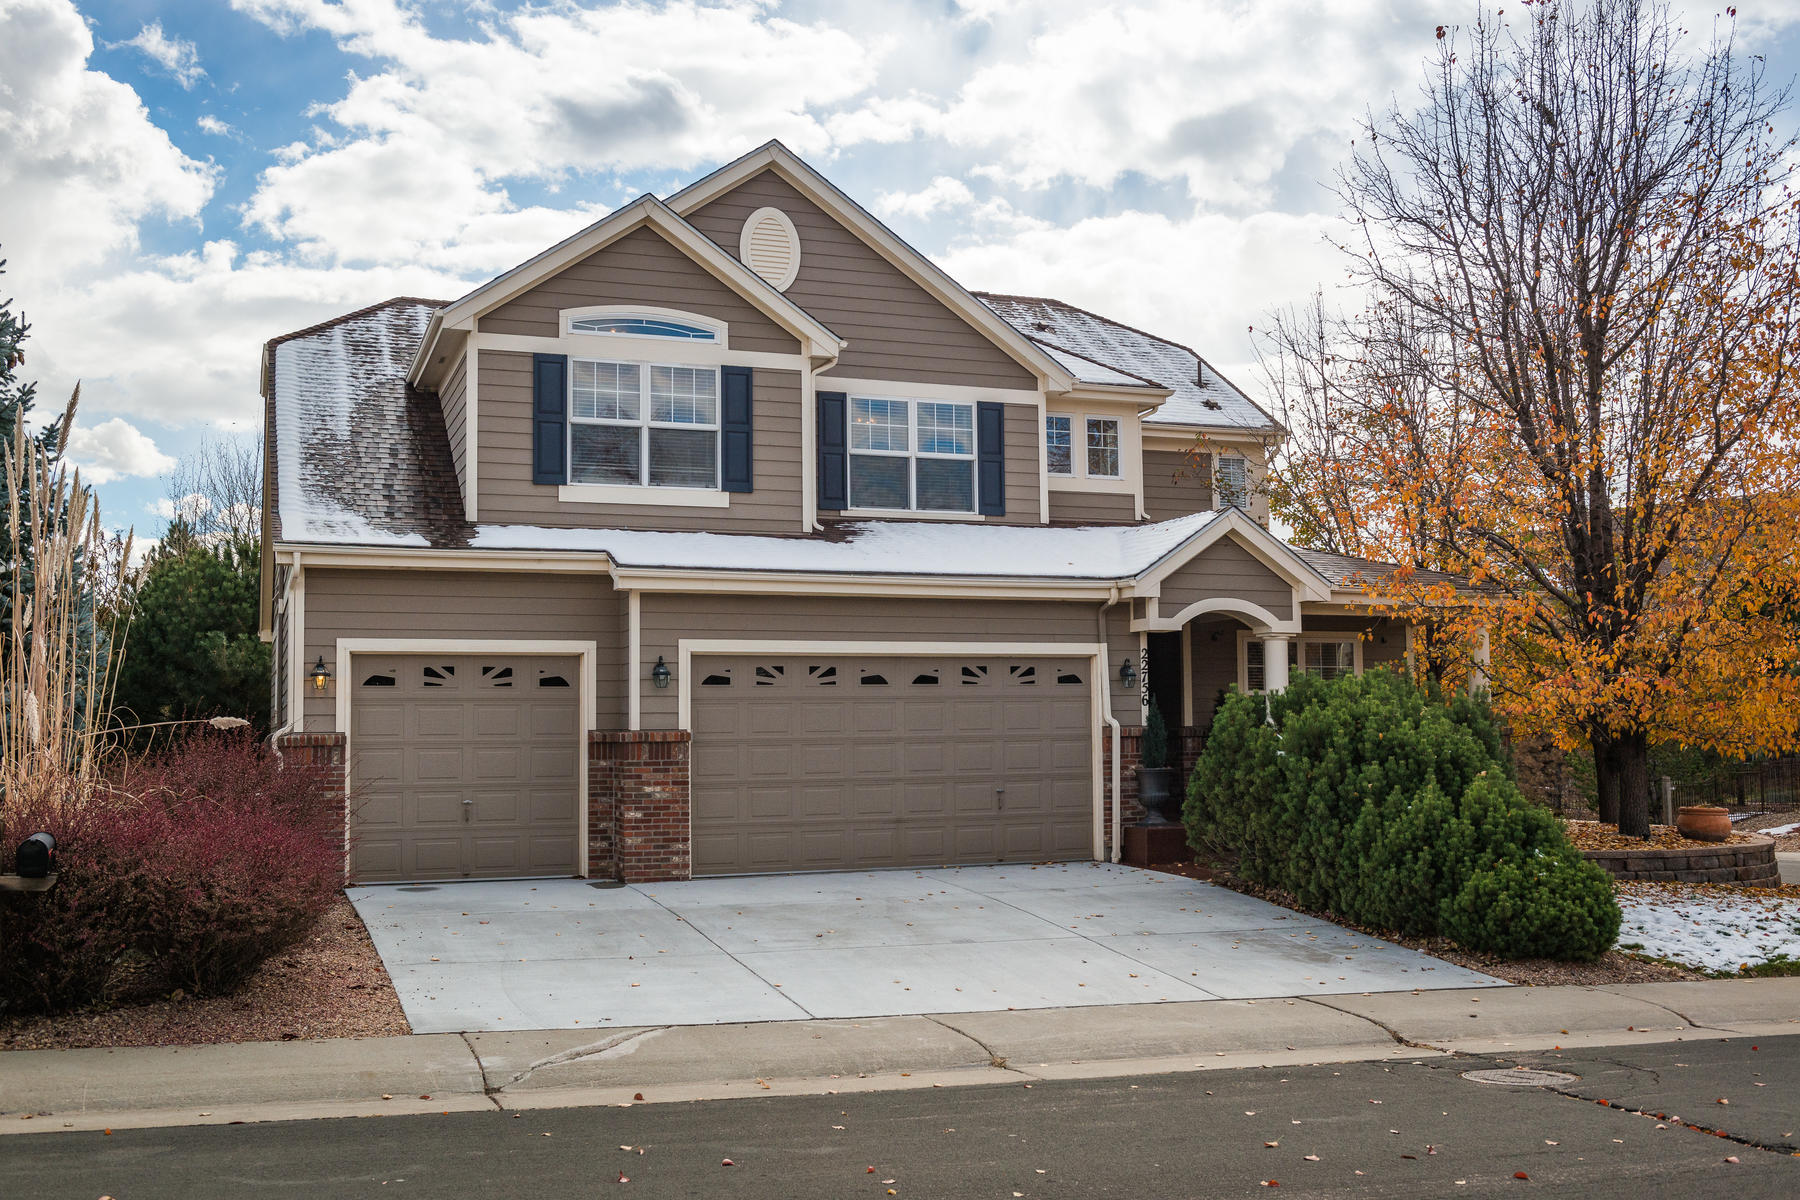 Single Family Homes for Sale at Amazing location with quick access to Southlands mall, E-470, and golf. 22756 E Calhoun Pl Aurora, Colorado 80016 United States